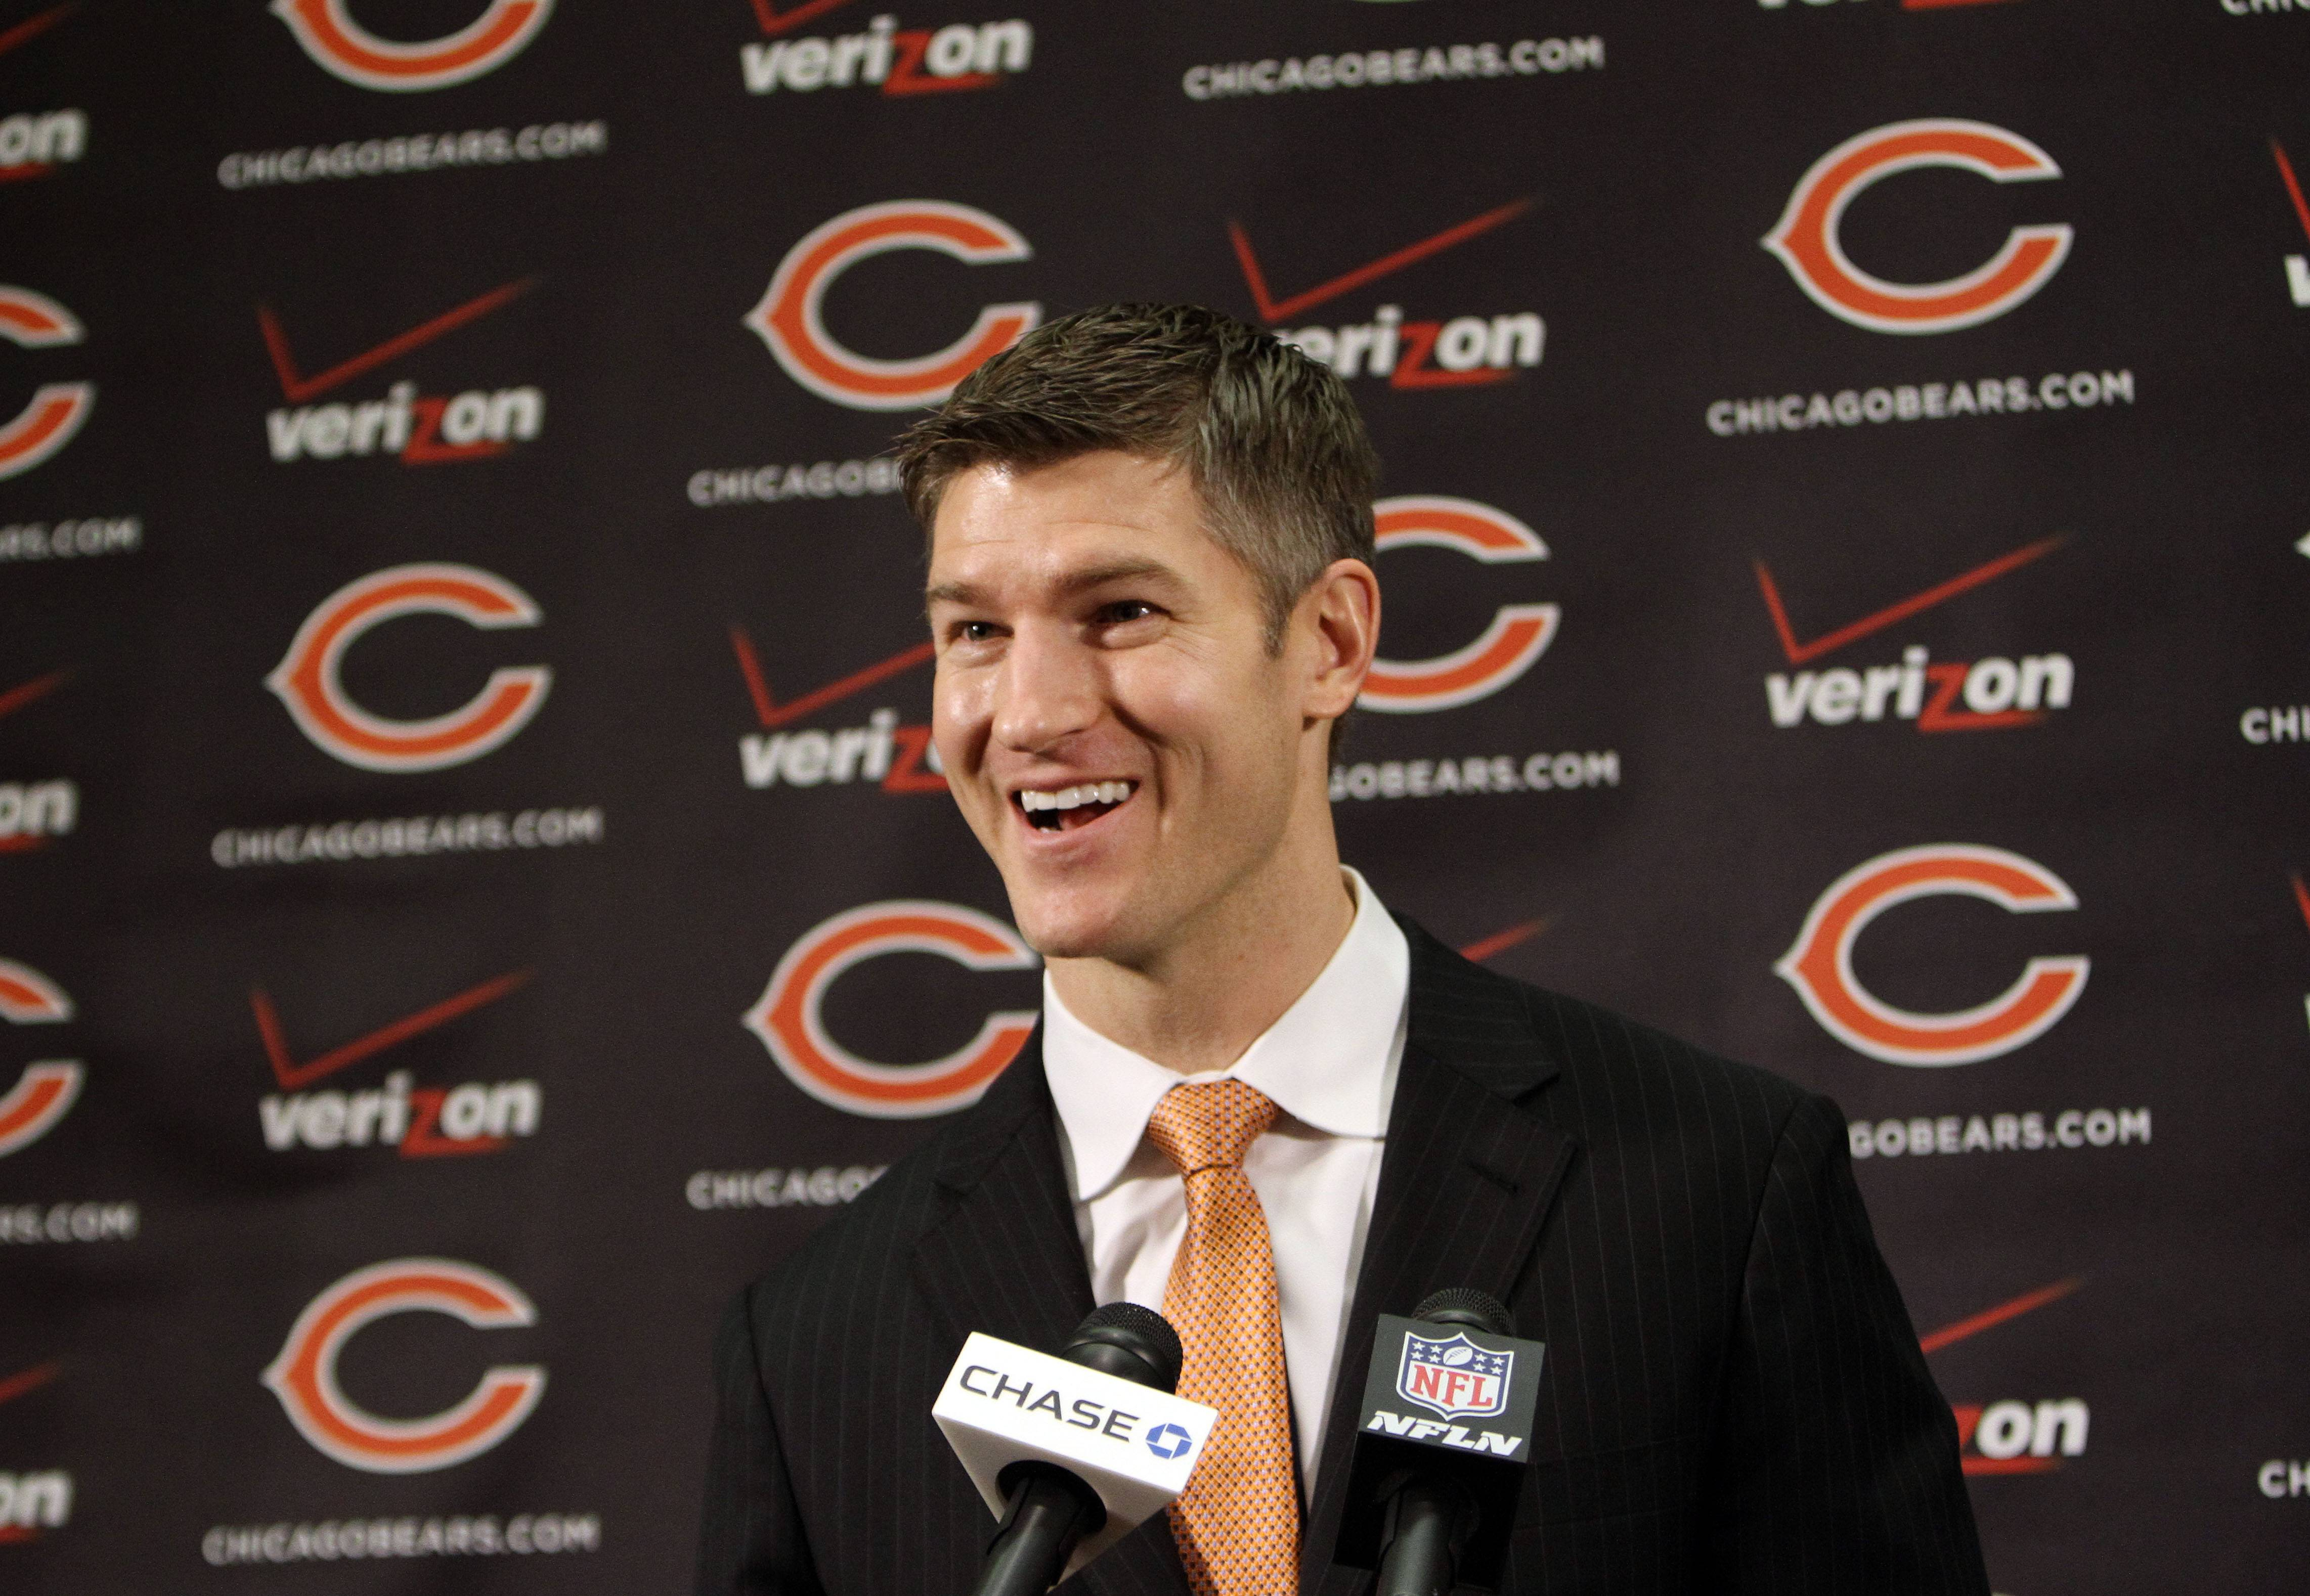 Ryan Pace addressed the media after being announced as the Chicago Bears General Manager.